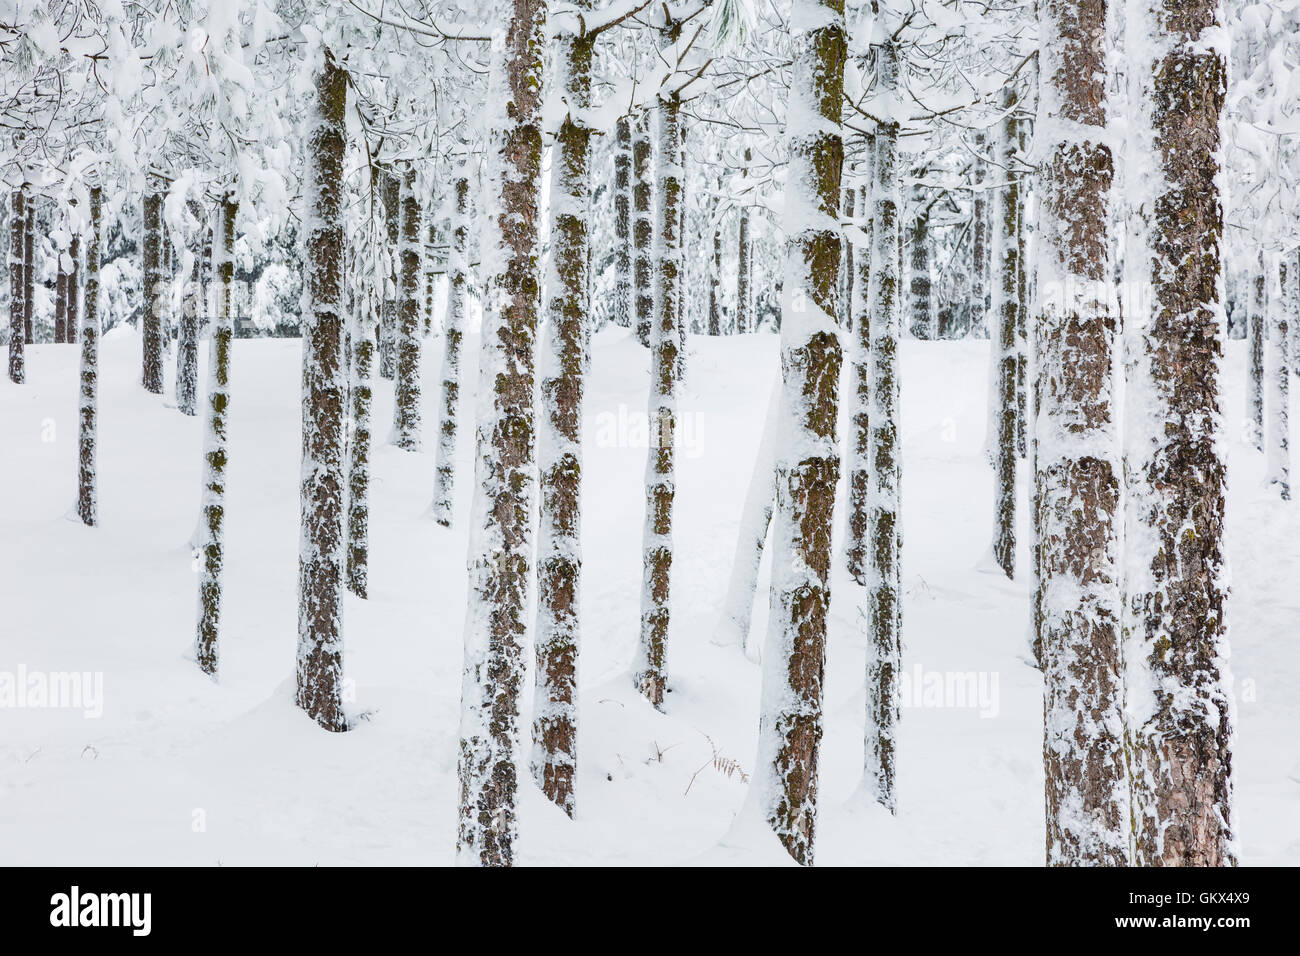 Conifer forest in winter. - Stock Image